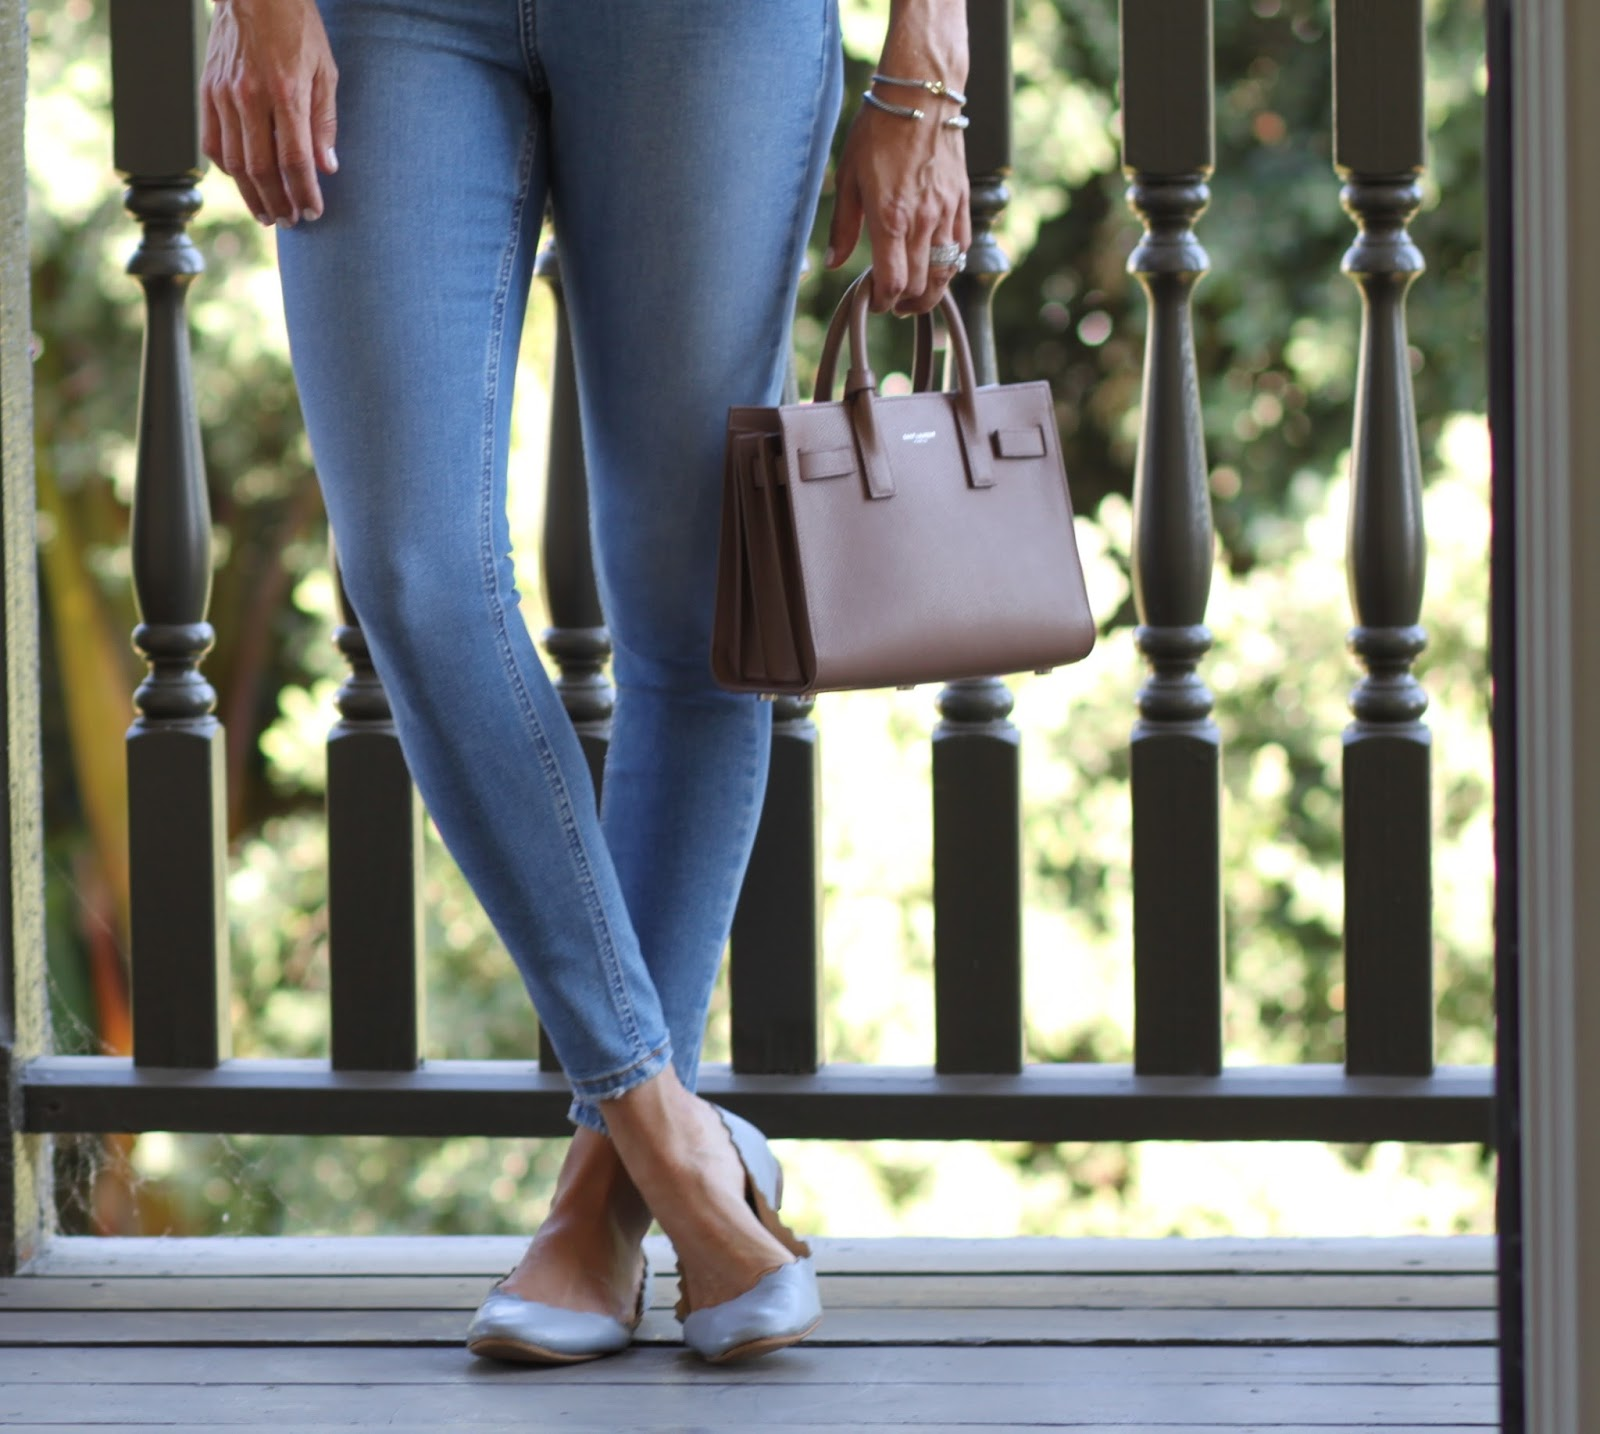 chloe flats and skinny jeans outfit